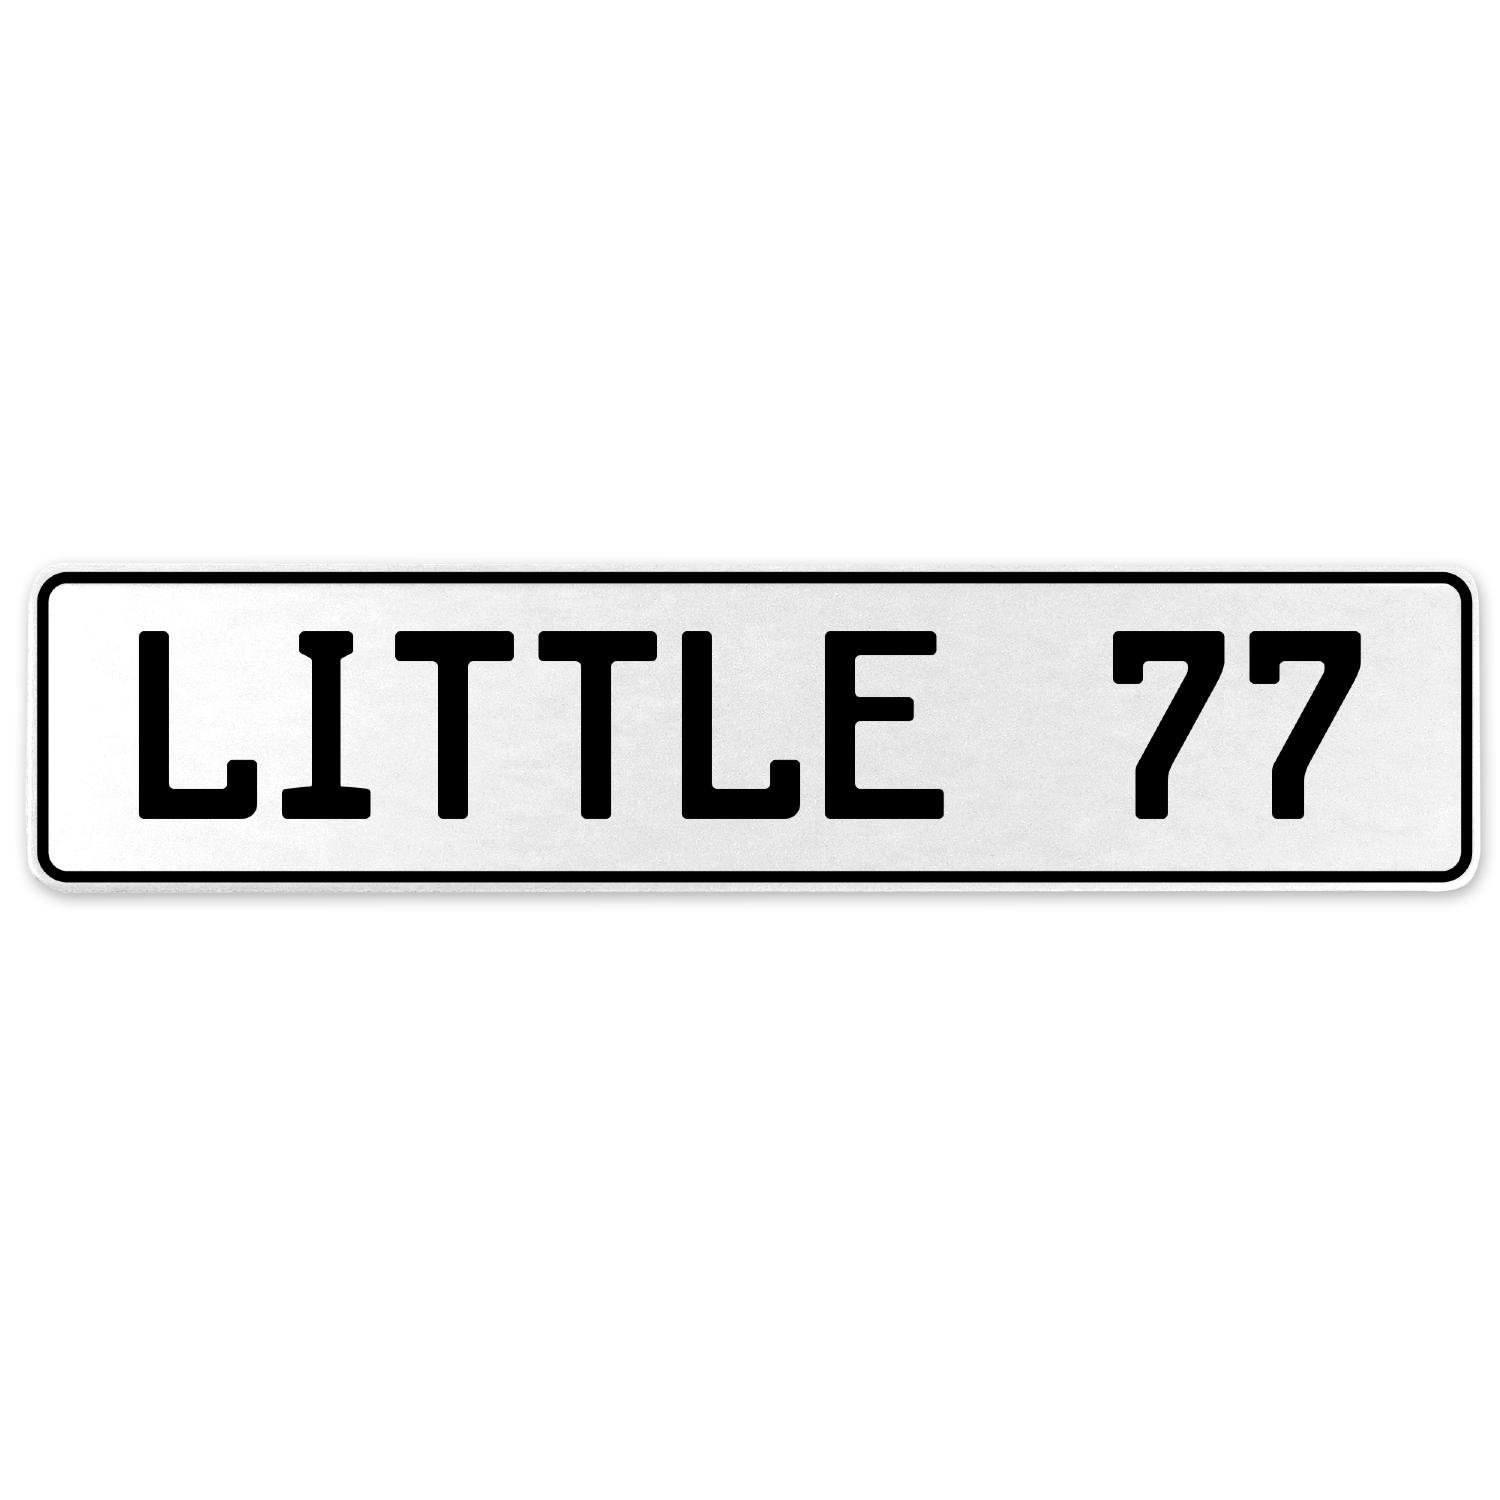 Vintage Parts 556357 Little 77 White Stamped Aluminum European License Plate